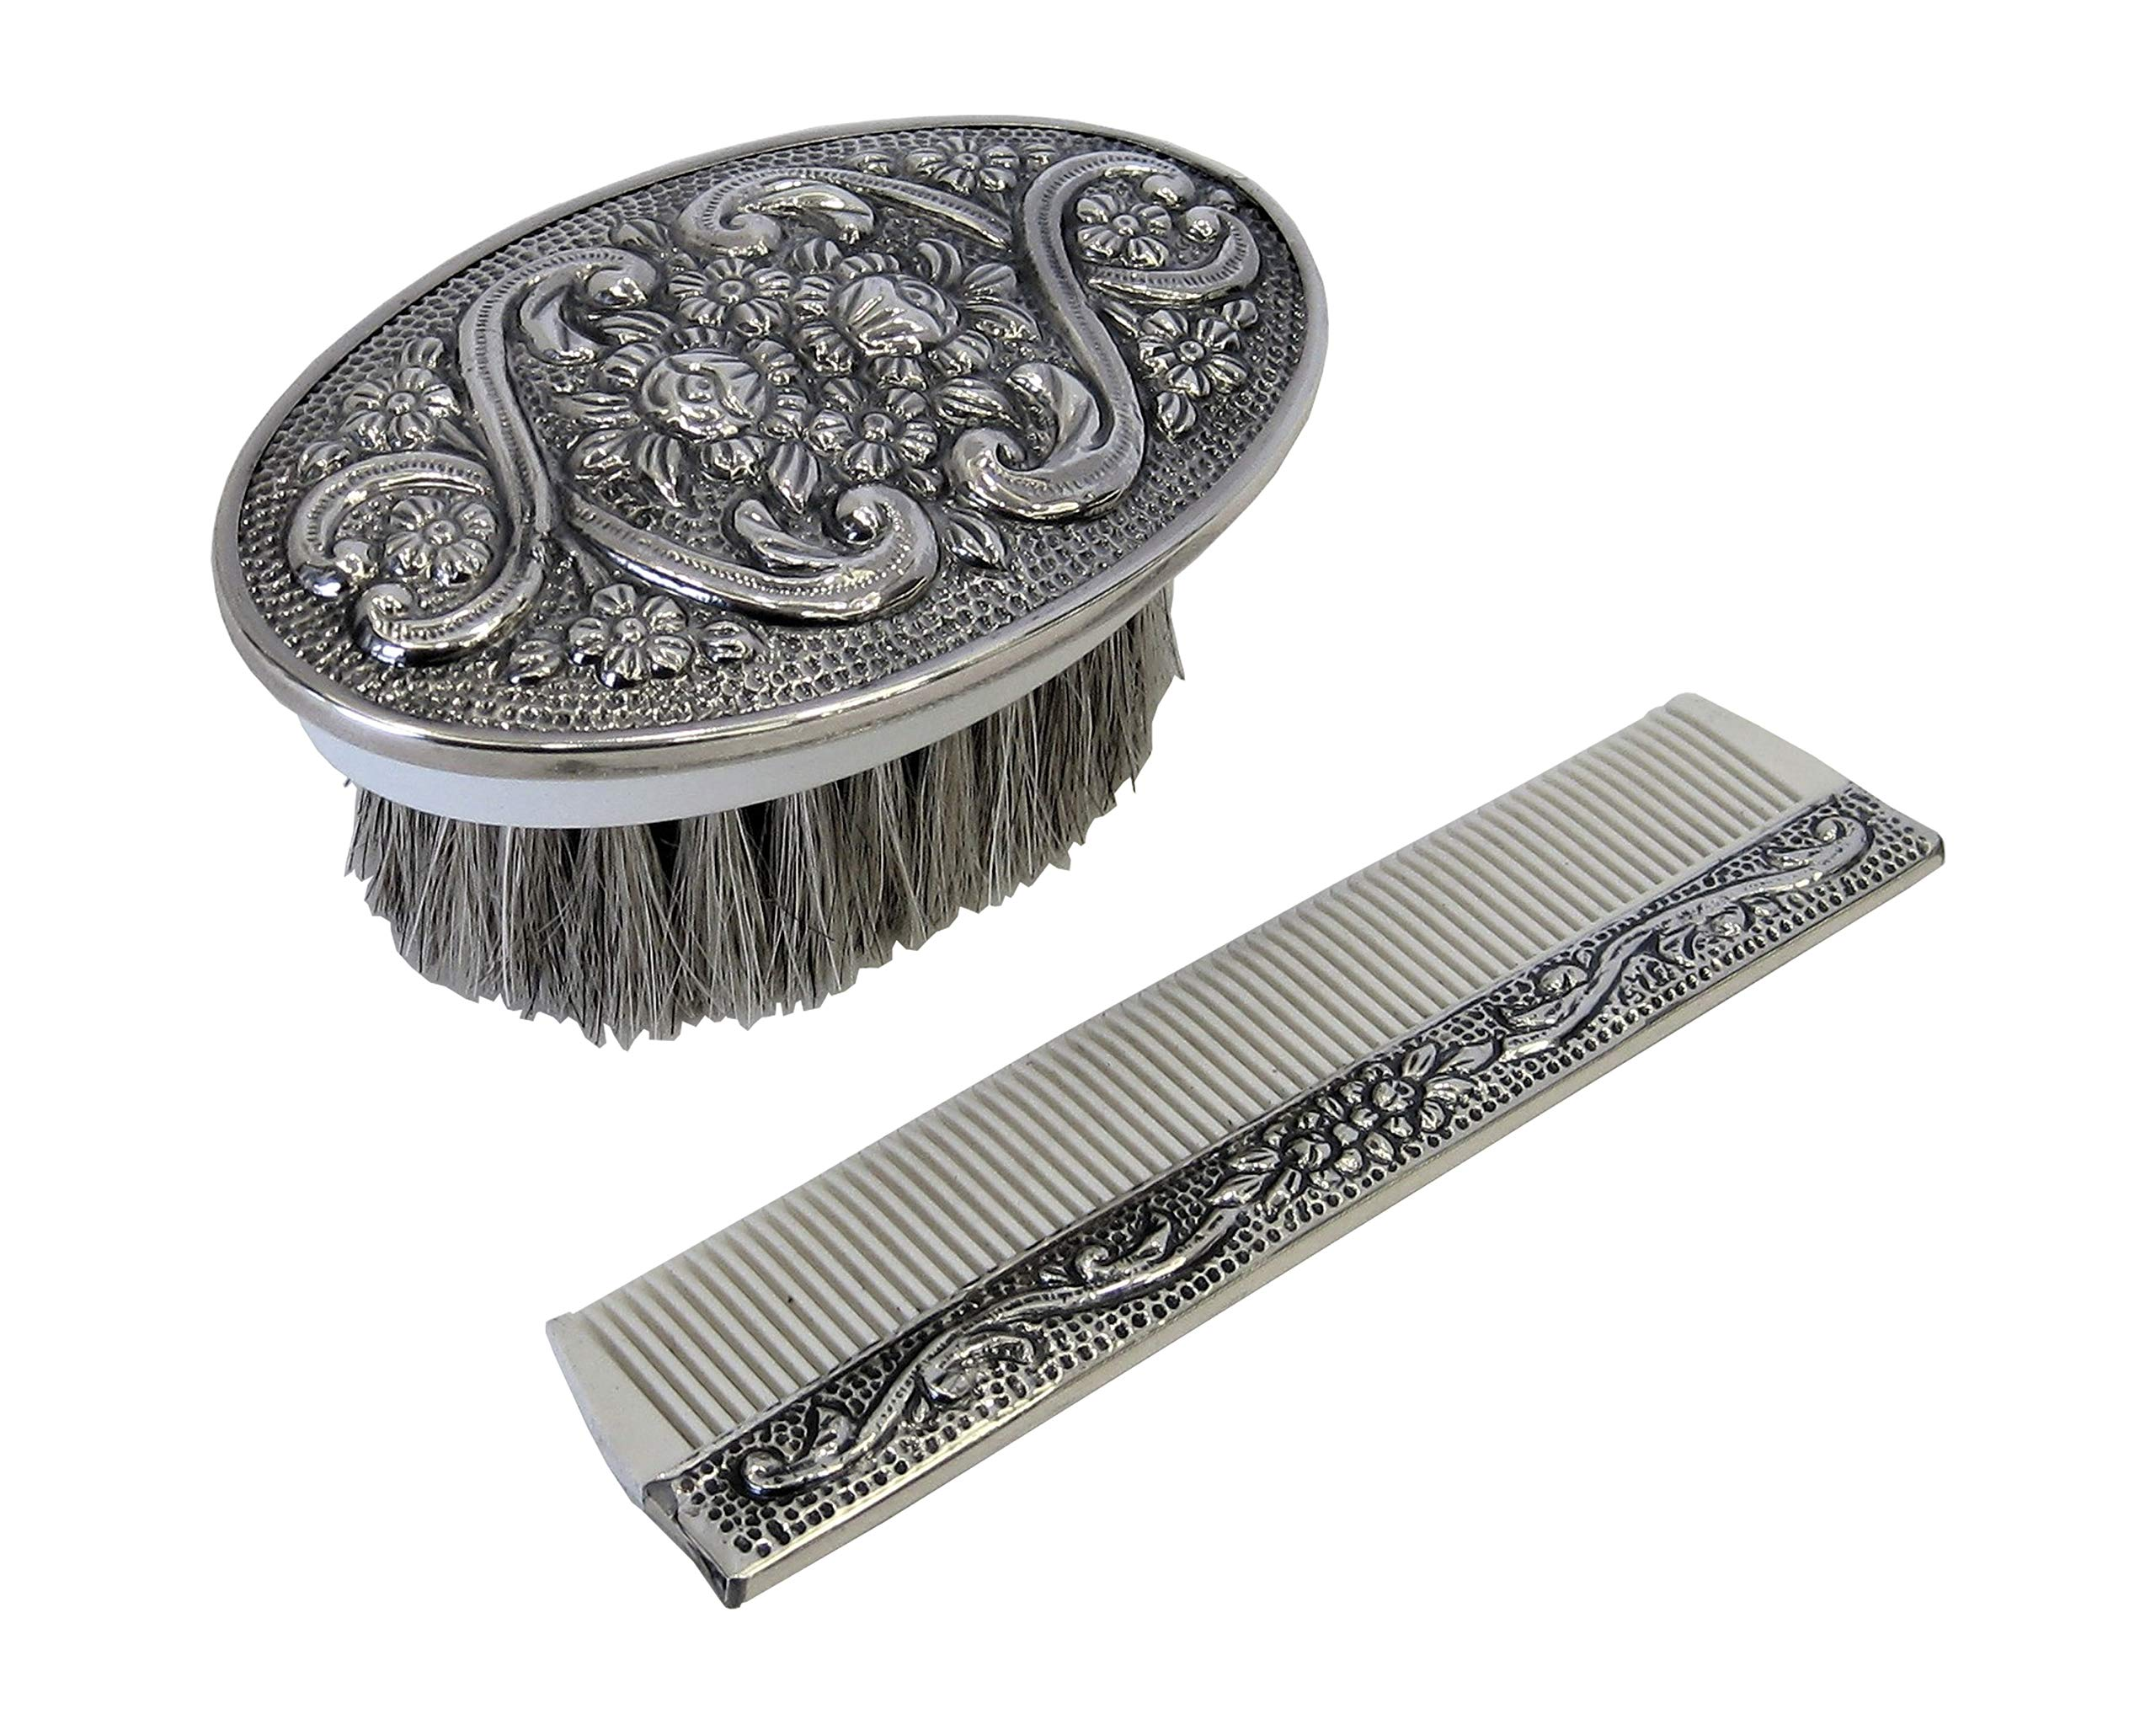 925 Sterling Silver Boy's Comb & Brush Set with Blue Felt Gift Box by Gelco (Image #1)